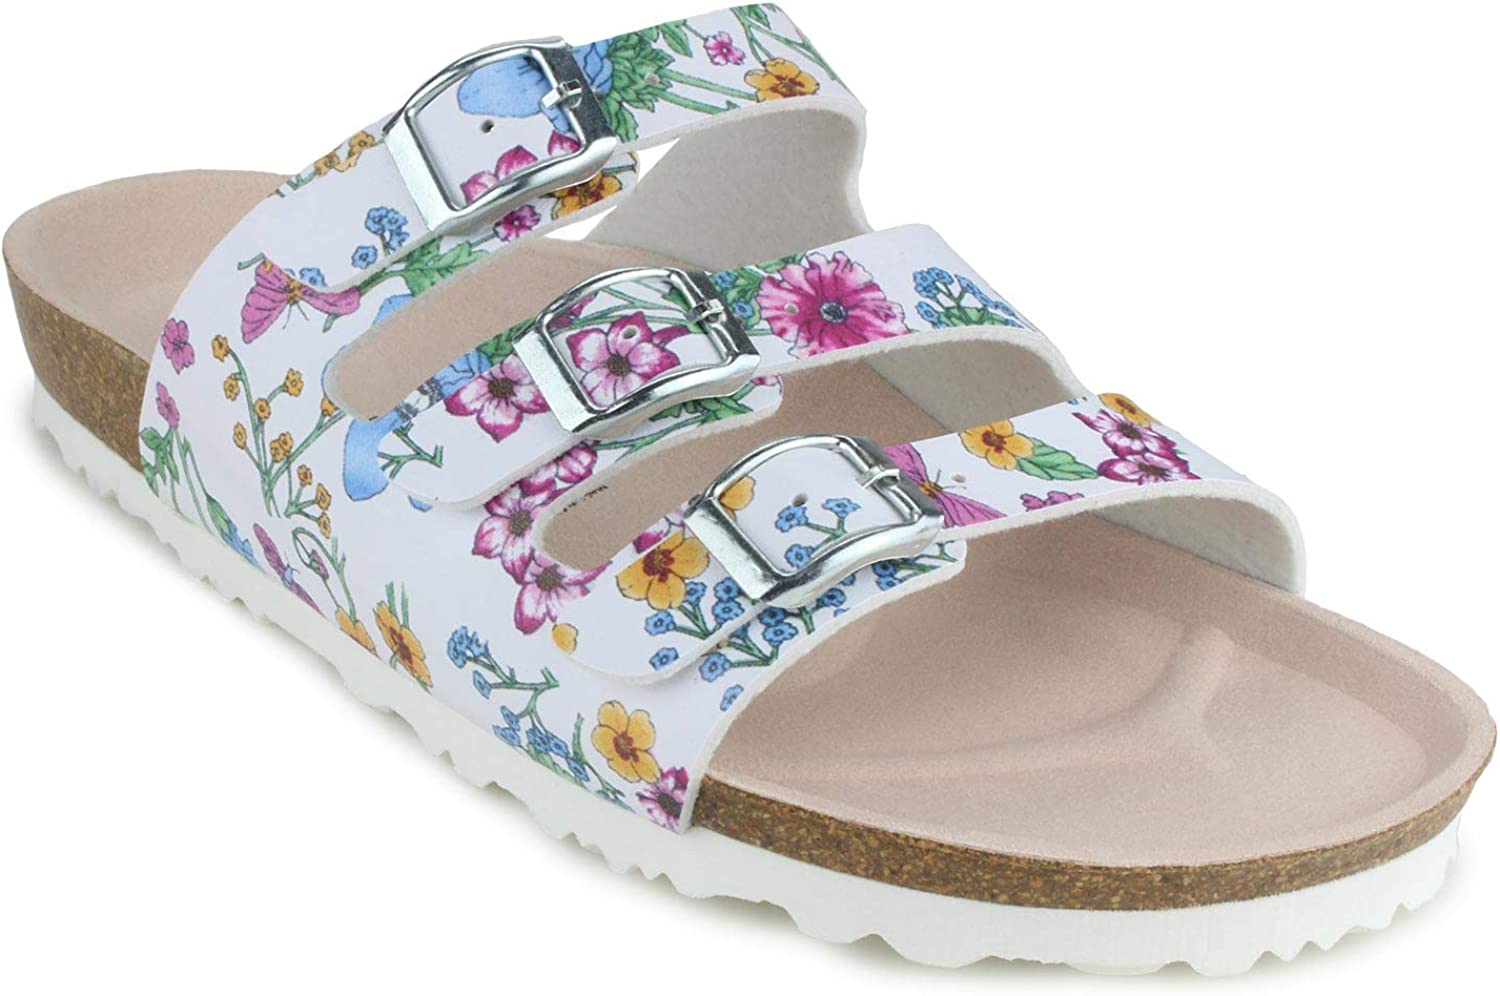 JOE N JOYCE   Paris Flower  Womens Cork-Sandal SynSoft Comfort-Footbed   Strap